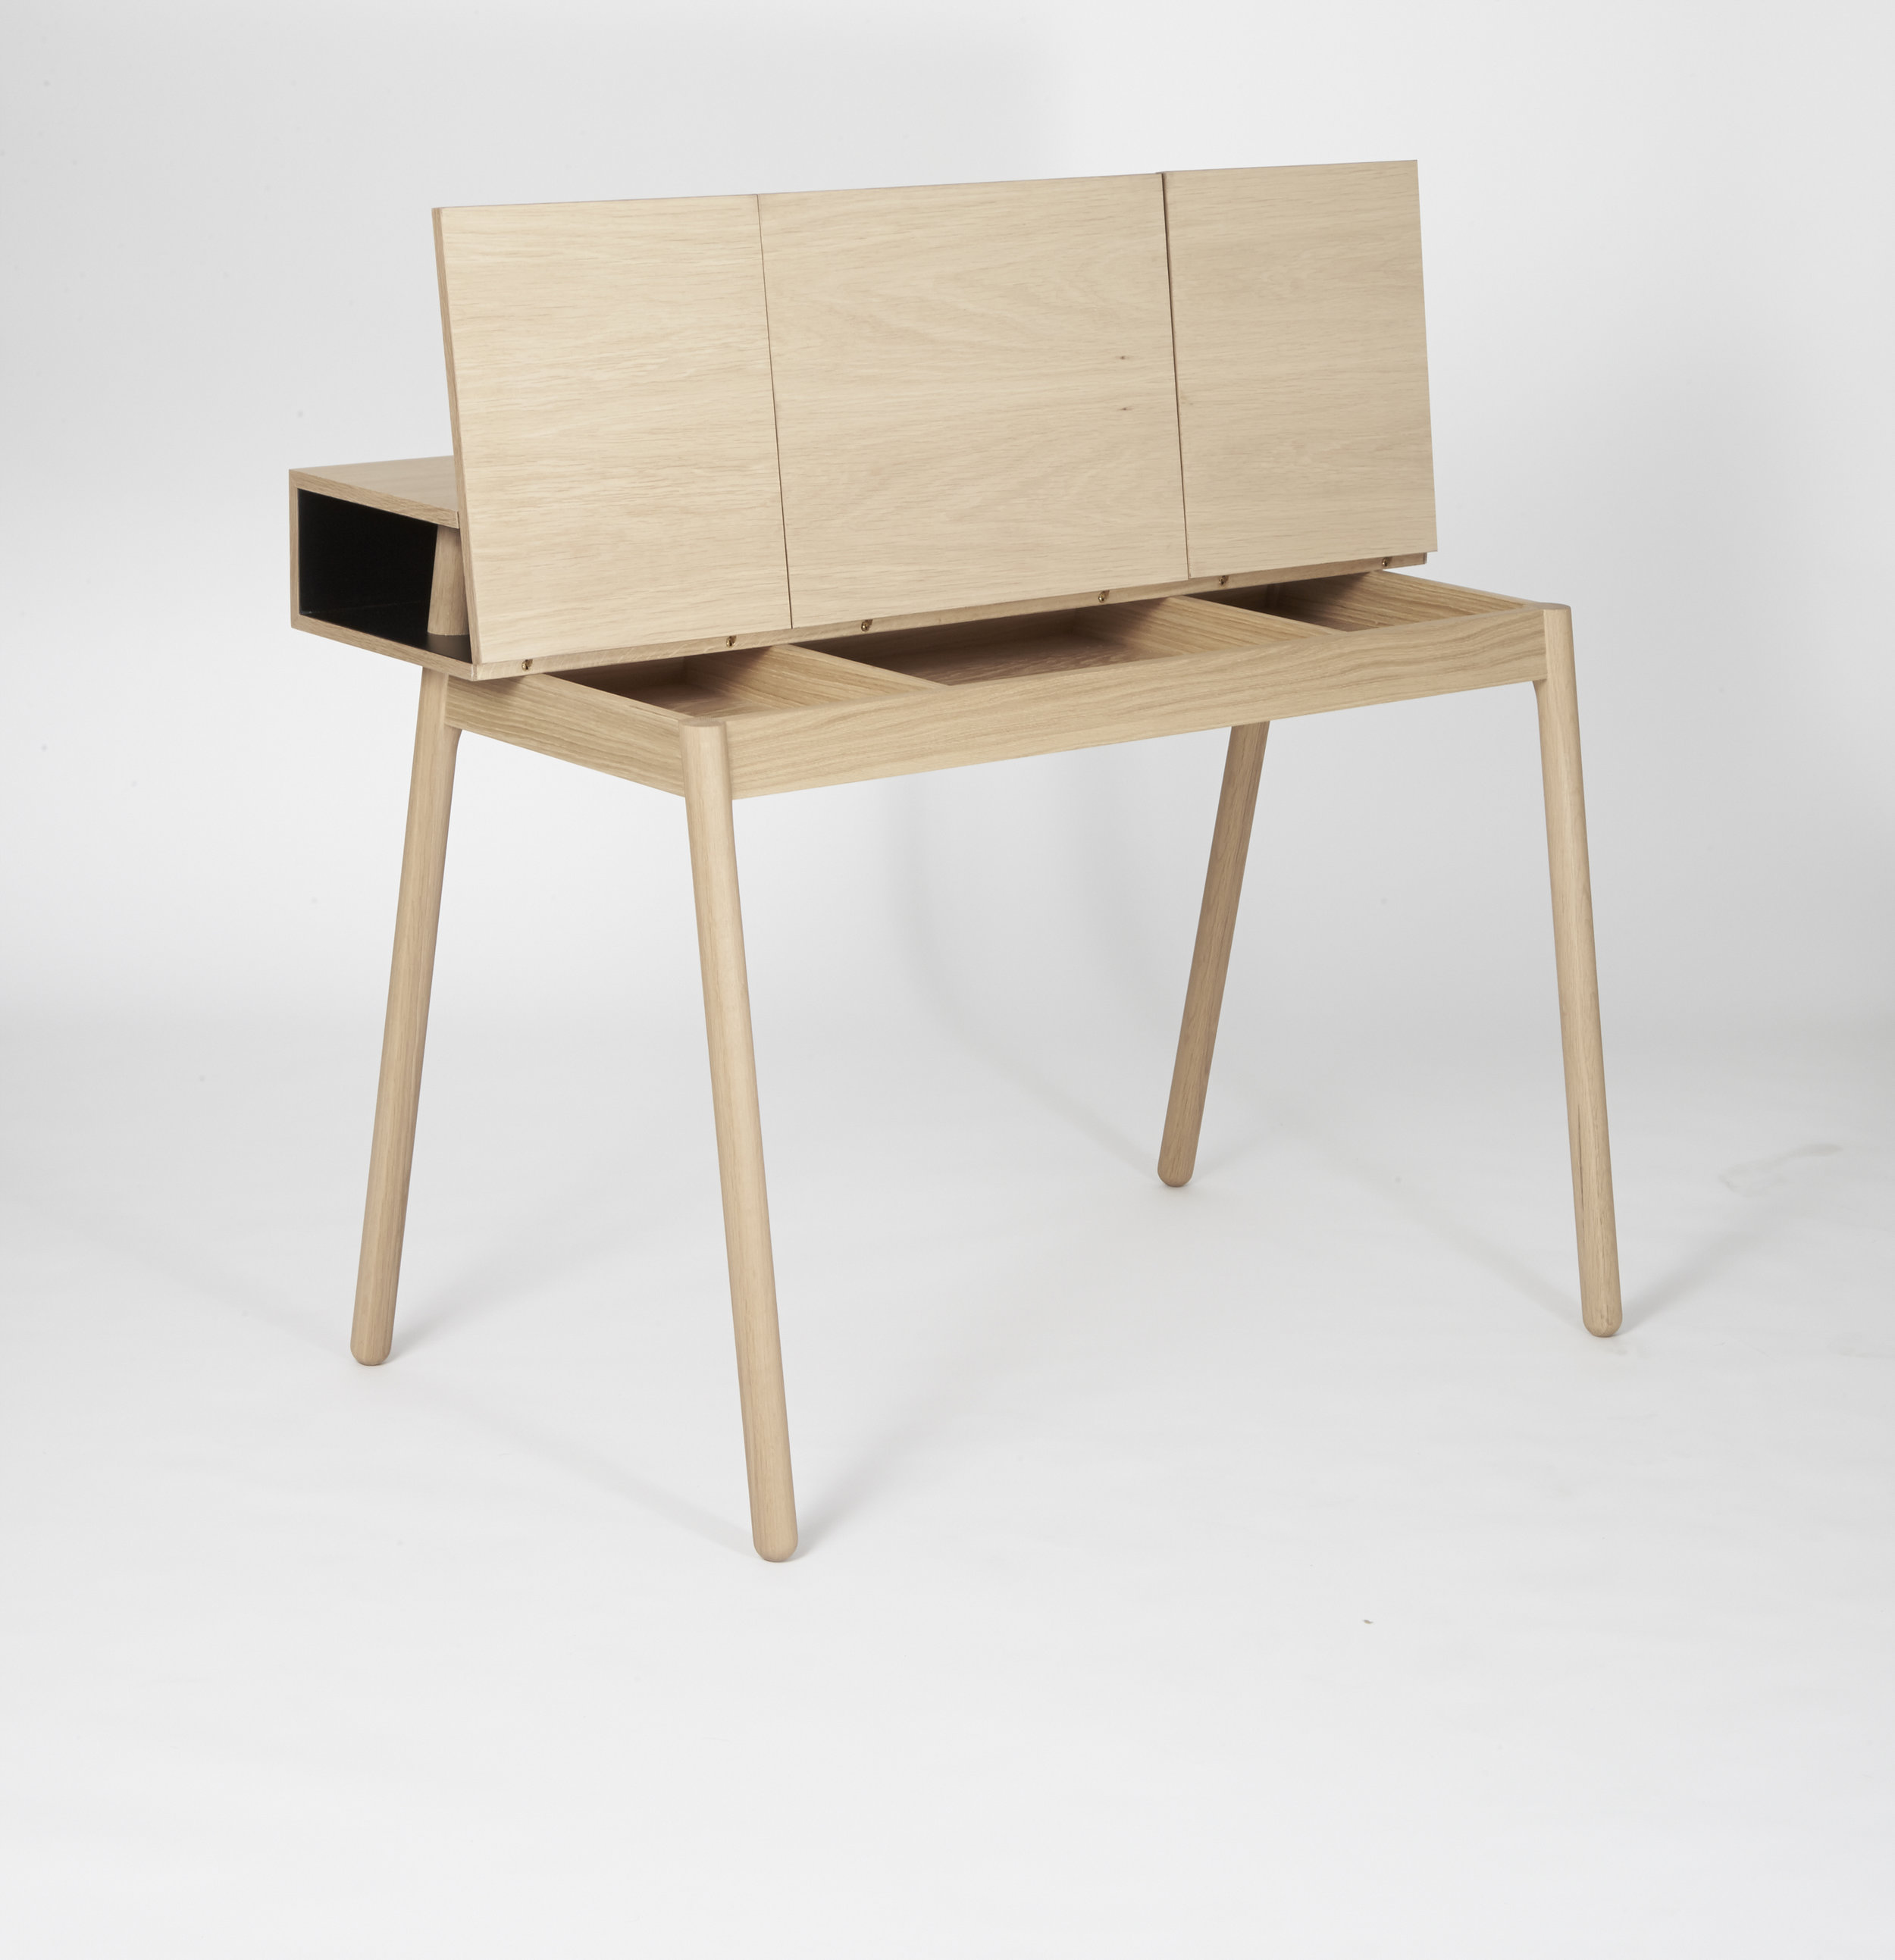 The desk is constructed using a sticks and plates technique, where the sticks support the top shelf. The legs prevent the top shelf from bending and provide an aesthetically pleasing look. -